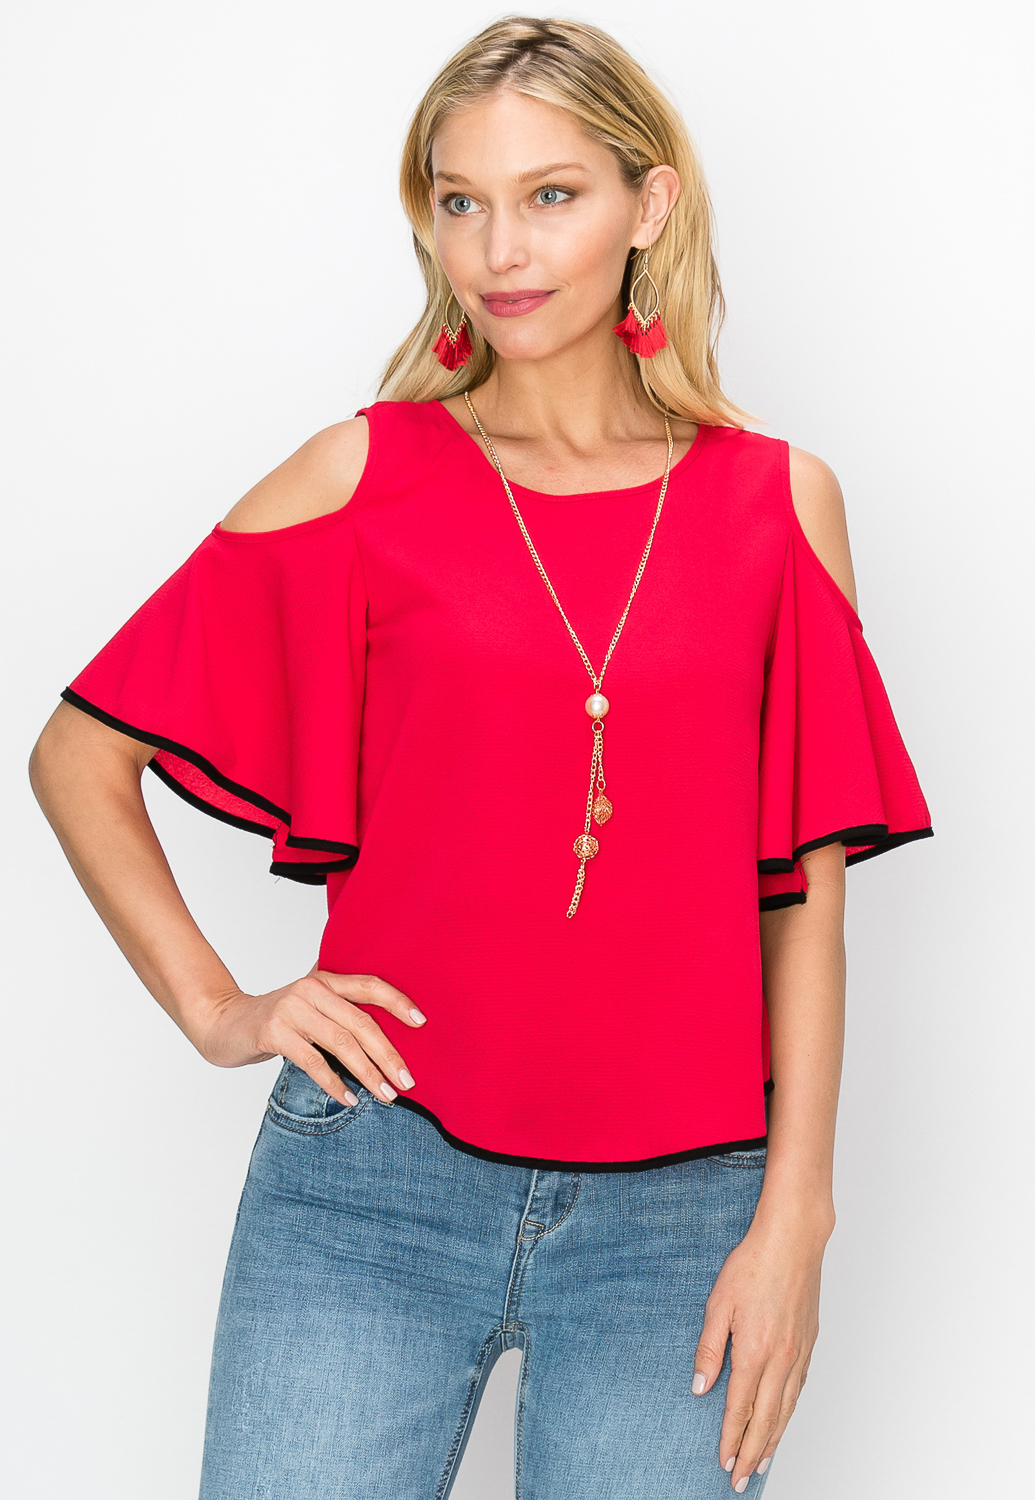 Open Shoulder W/Necklace Dressy Top